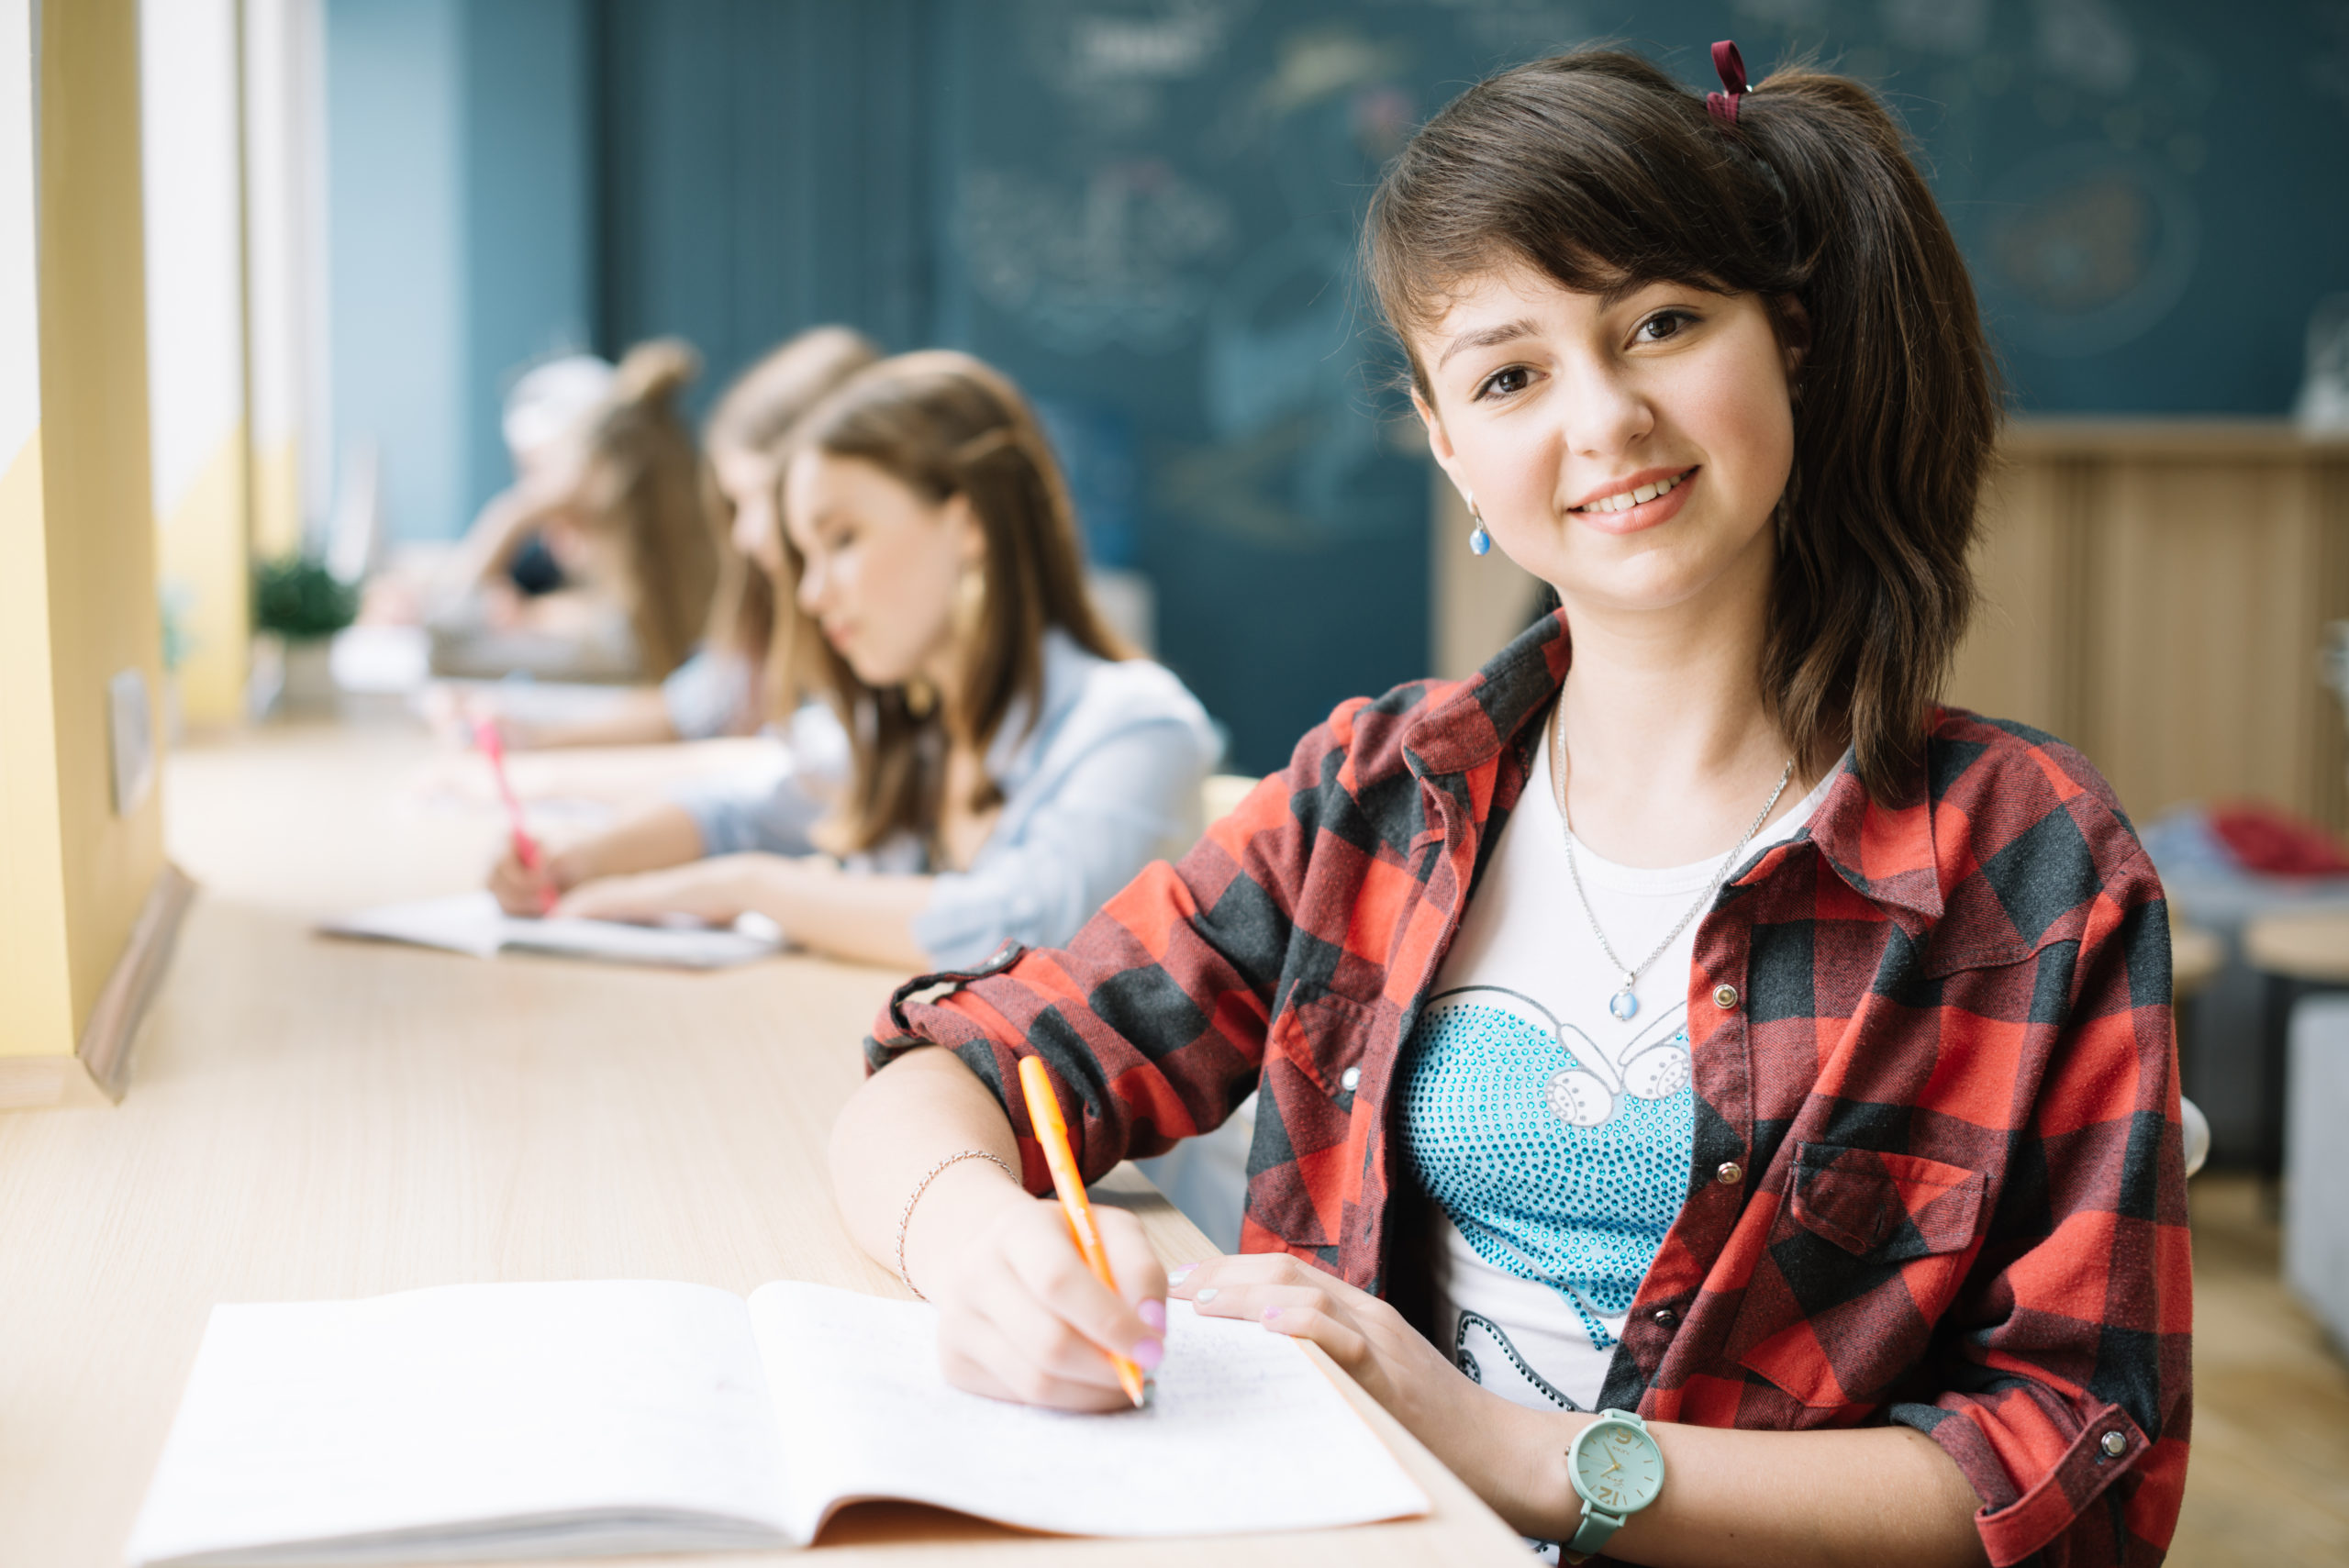 smiling-student-with-notepad-in-class